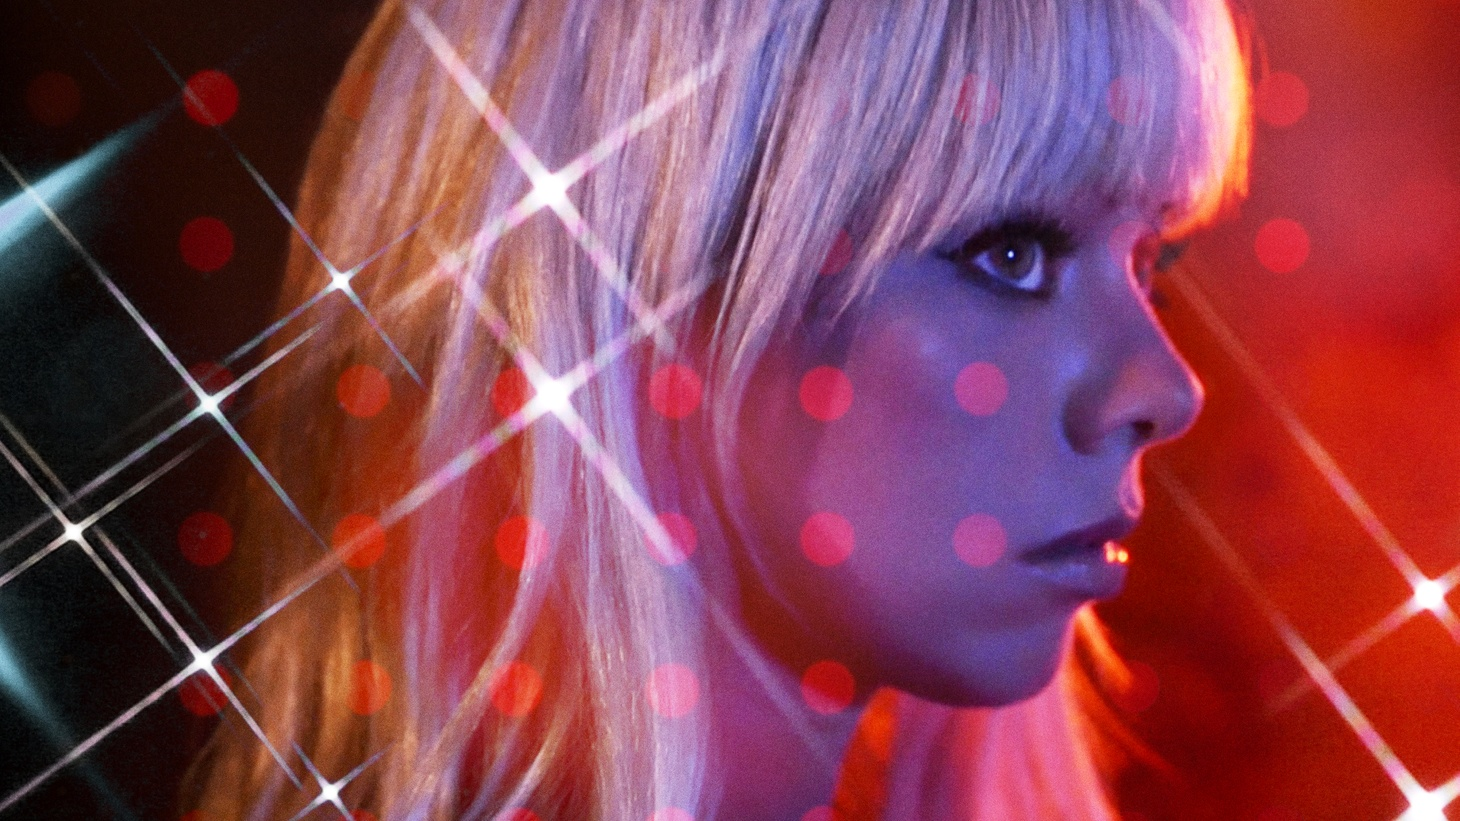 Chromatics started out as a noise-laden outfit founded by Adam Miller in 2001 in Seattle. Eventually Miller forged a new path into an electronic sound and a full band line up.